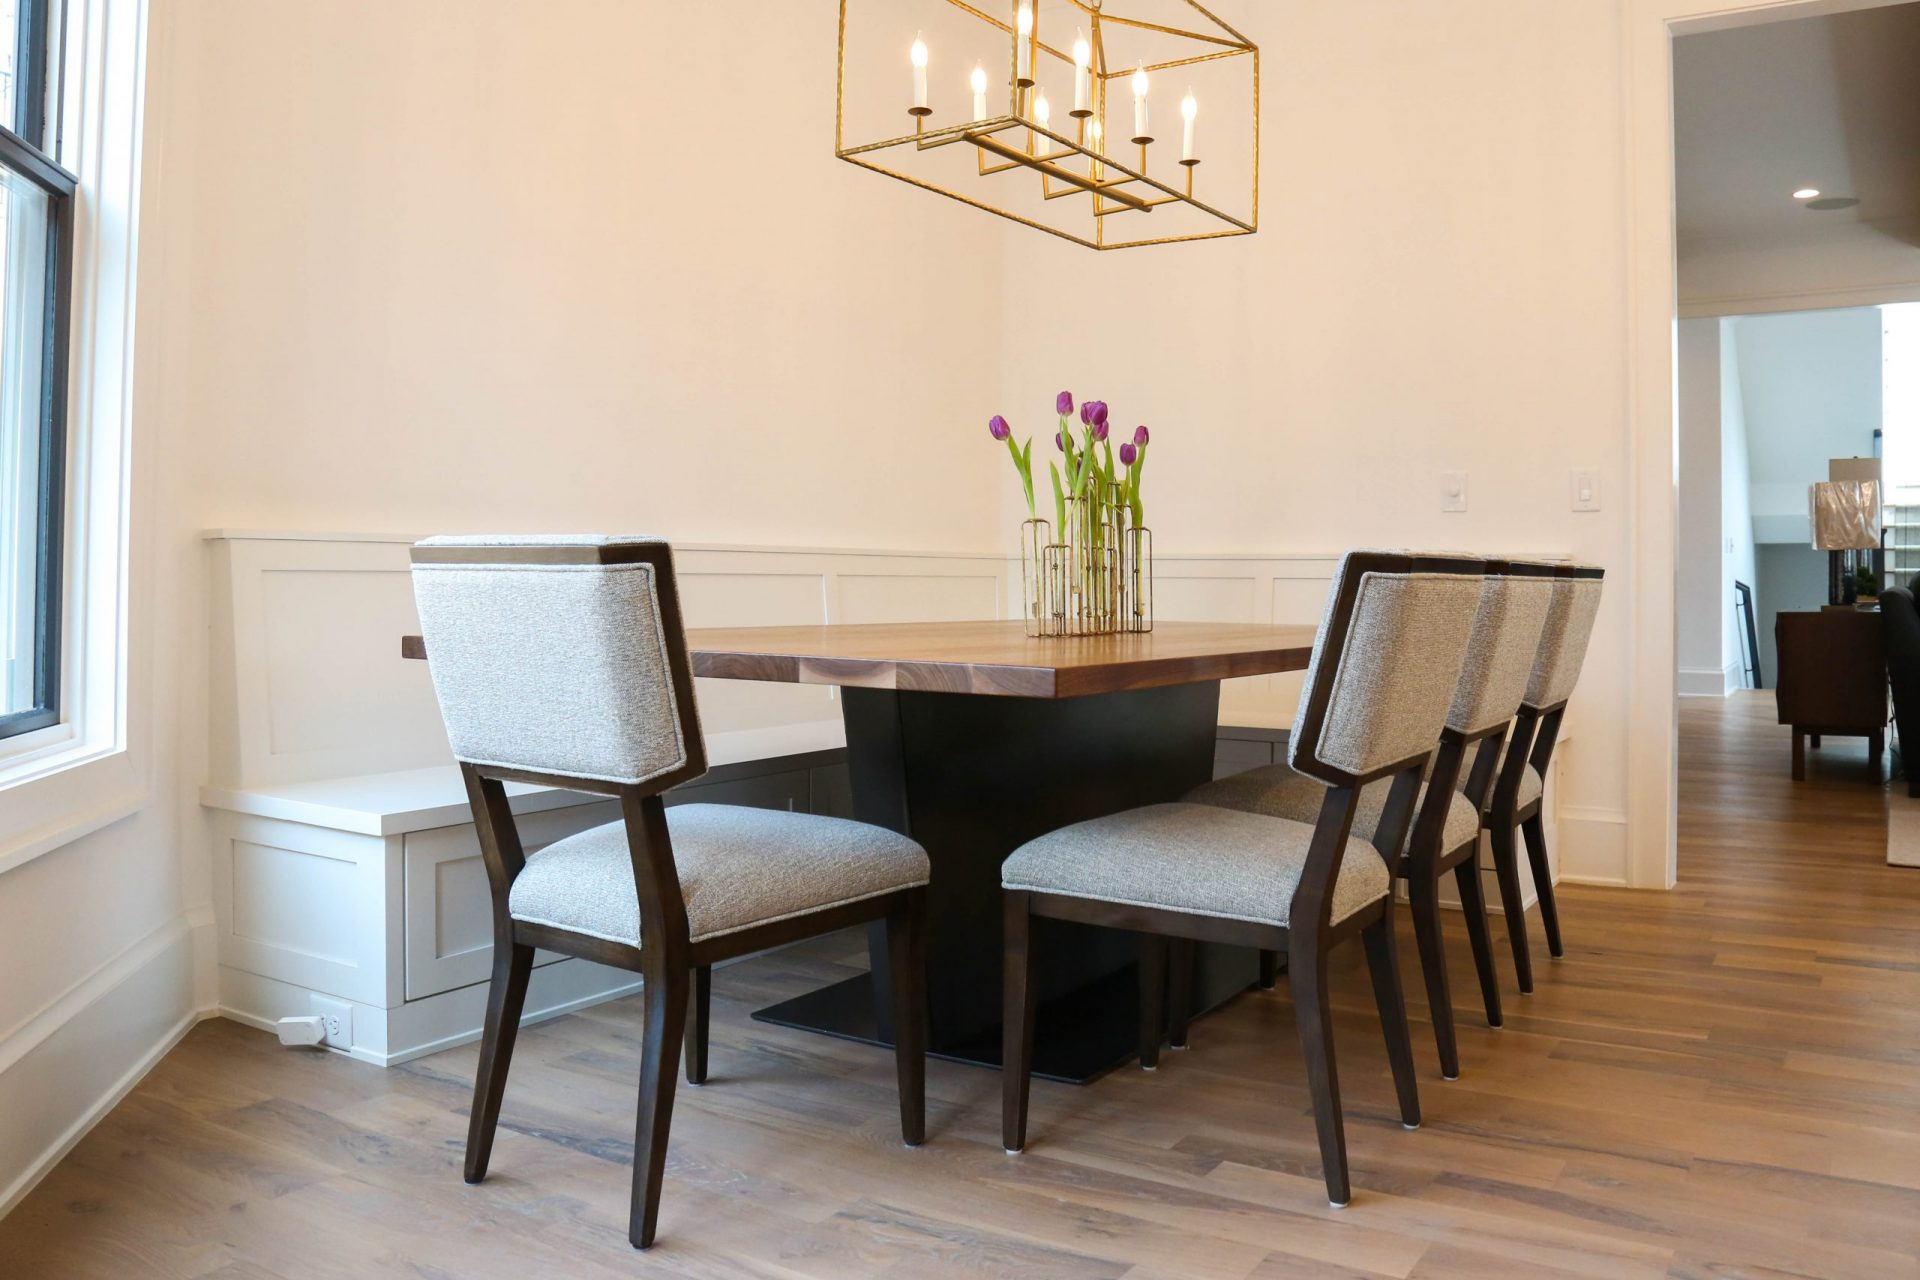 custom contemporary table with chairs in kitchen